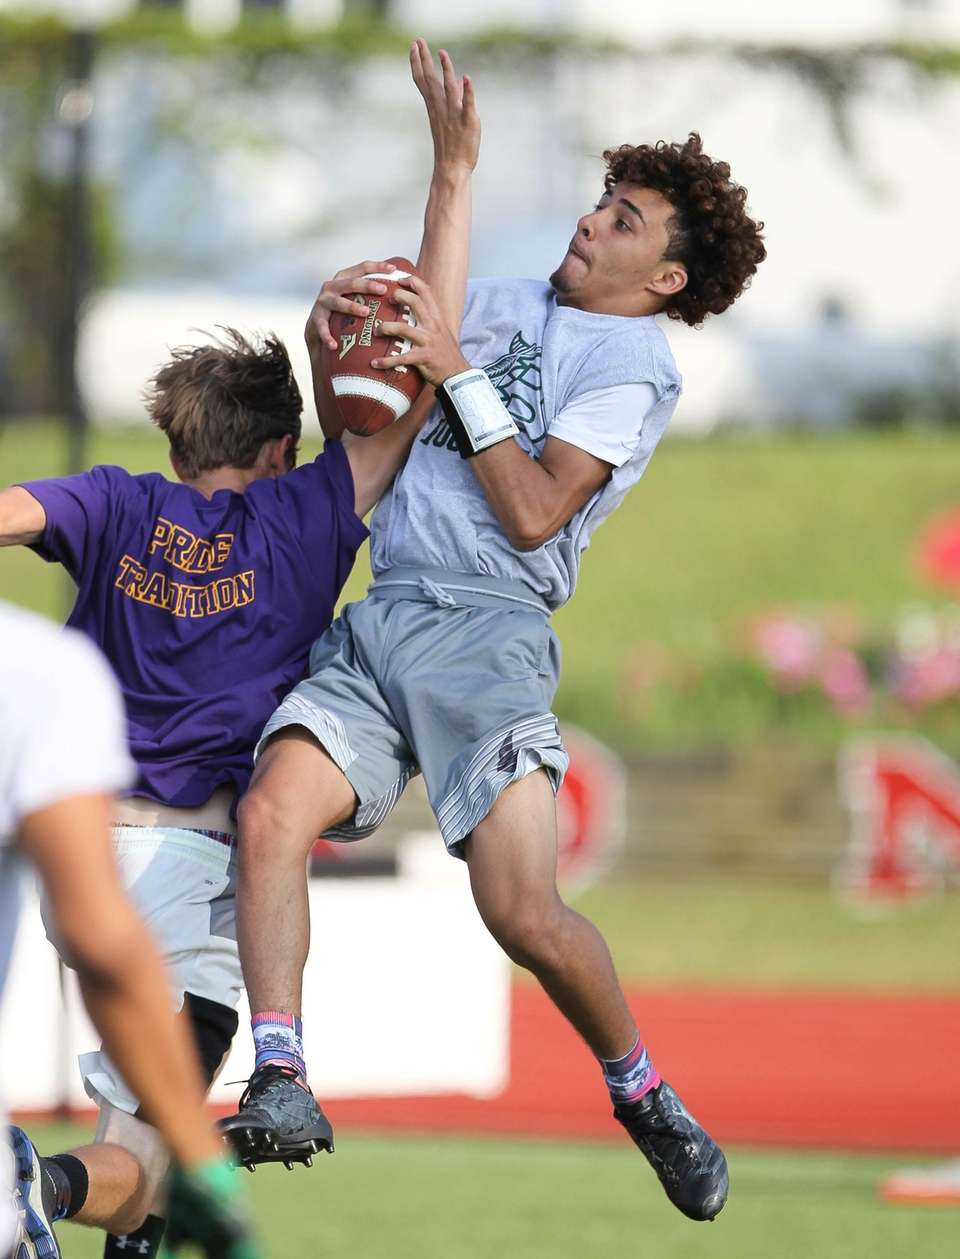 Brentwood's Kenny Lazo grabs a pass during the